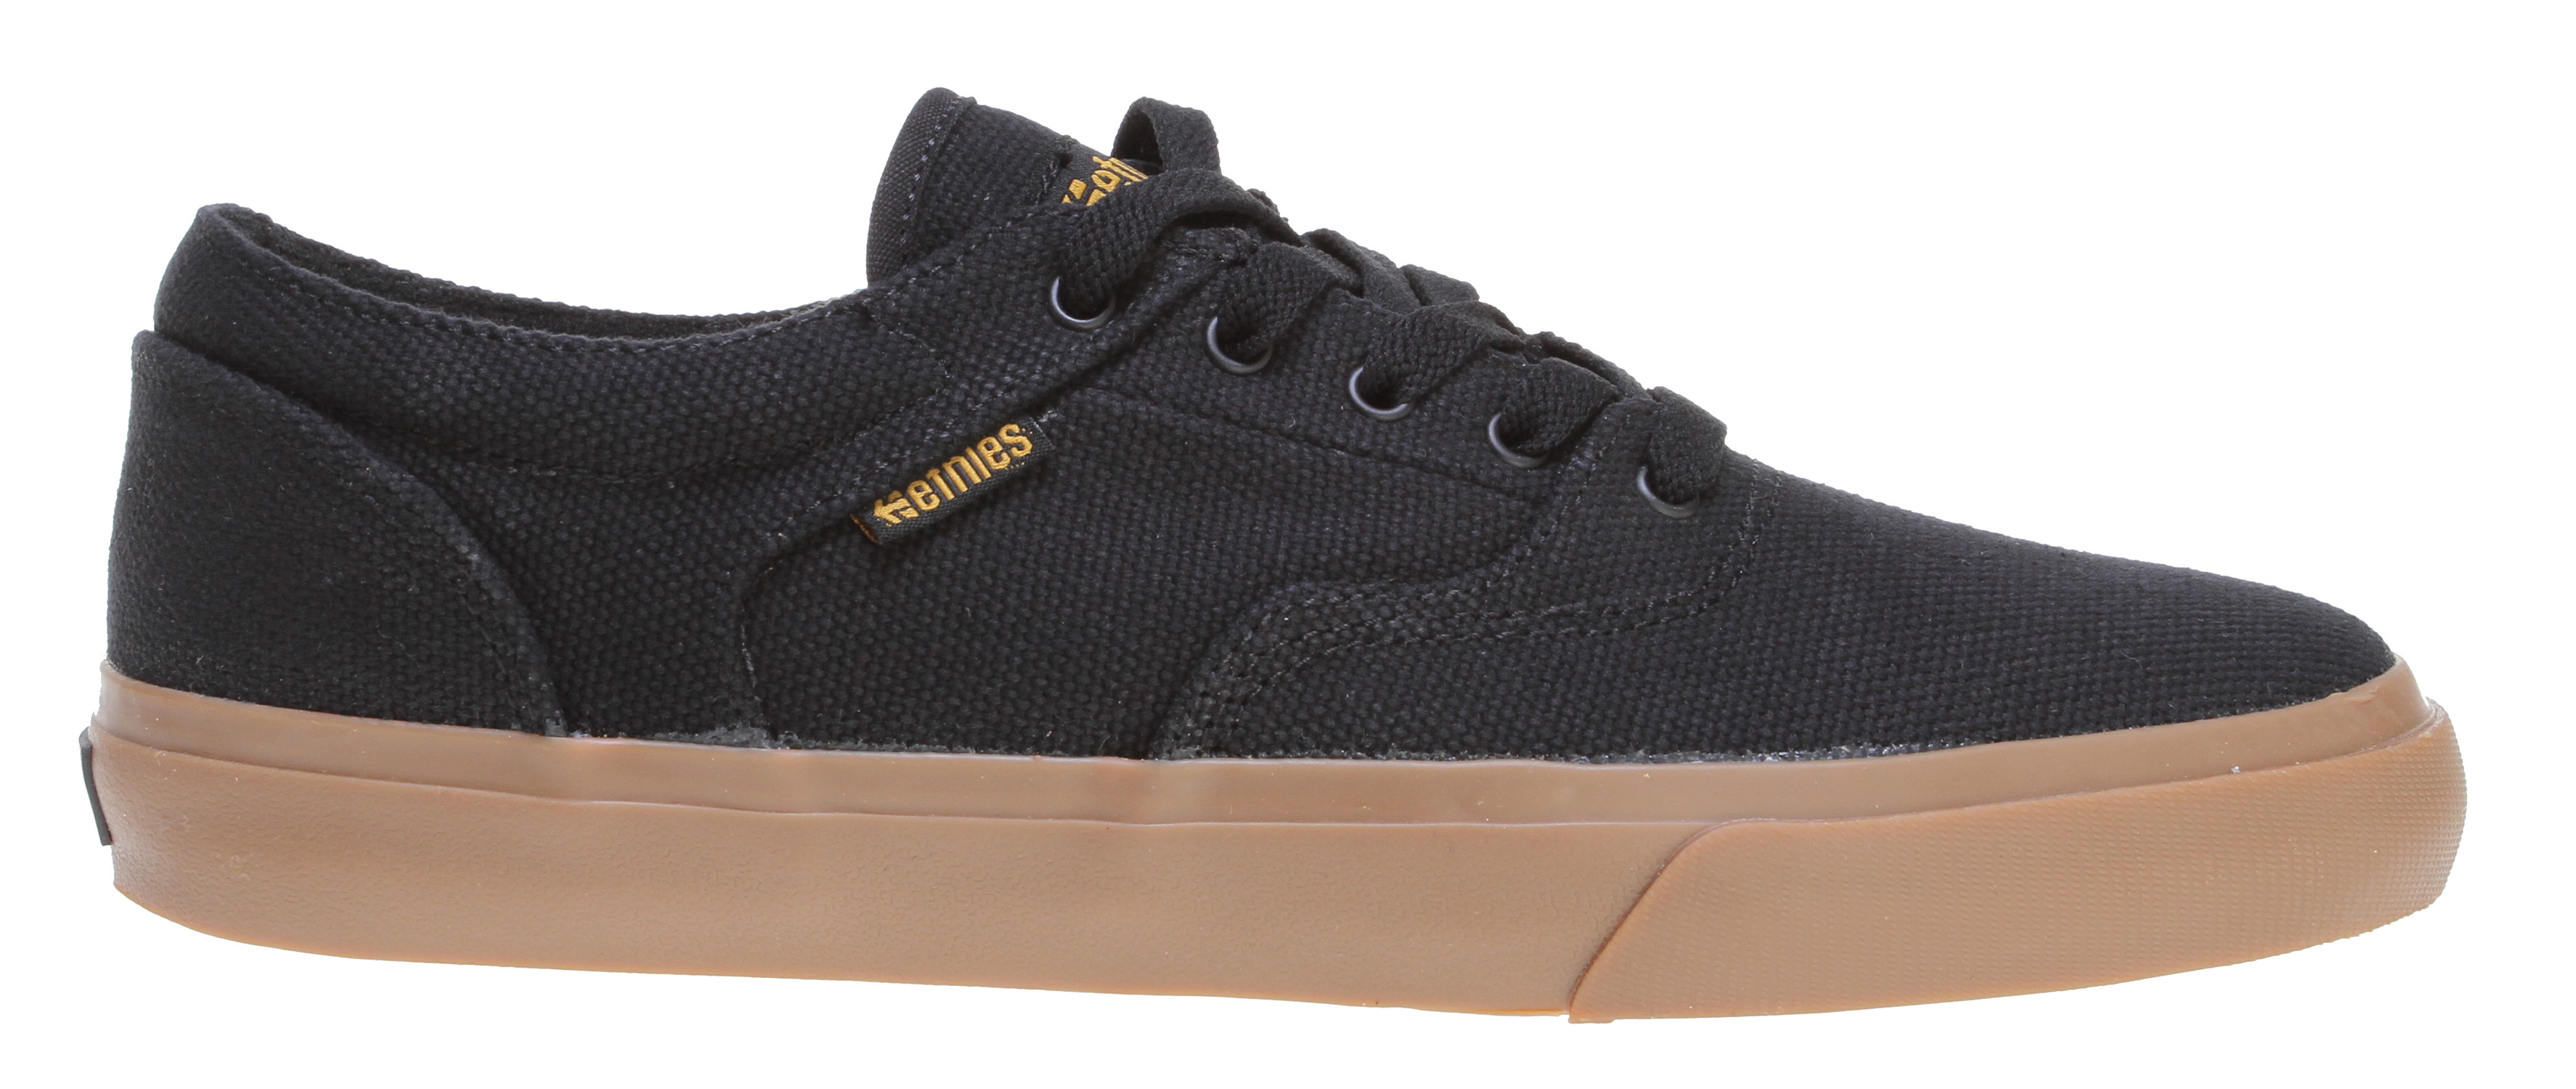 Skateboard Key Features of the Etnies Fairfax Skate Shoes: Textile upper in a technical skate shoe style with round toe Lace-up front with lightly padded tongue and collar Soft lining, removable STI DTTF Pro 1 cushioning insole Rubber midsole with textured toe bumper 400 NBS rubber outsole - $35.95